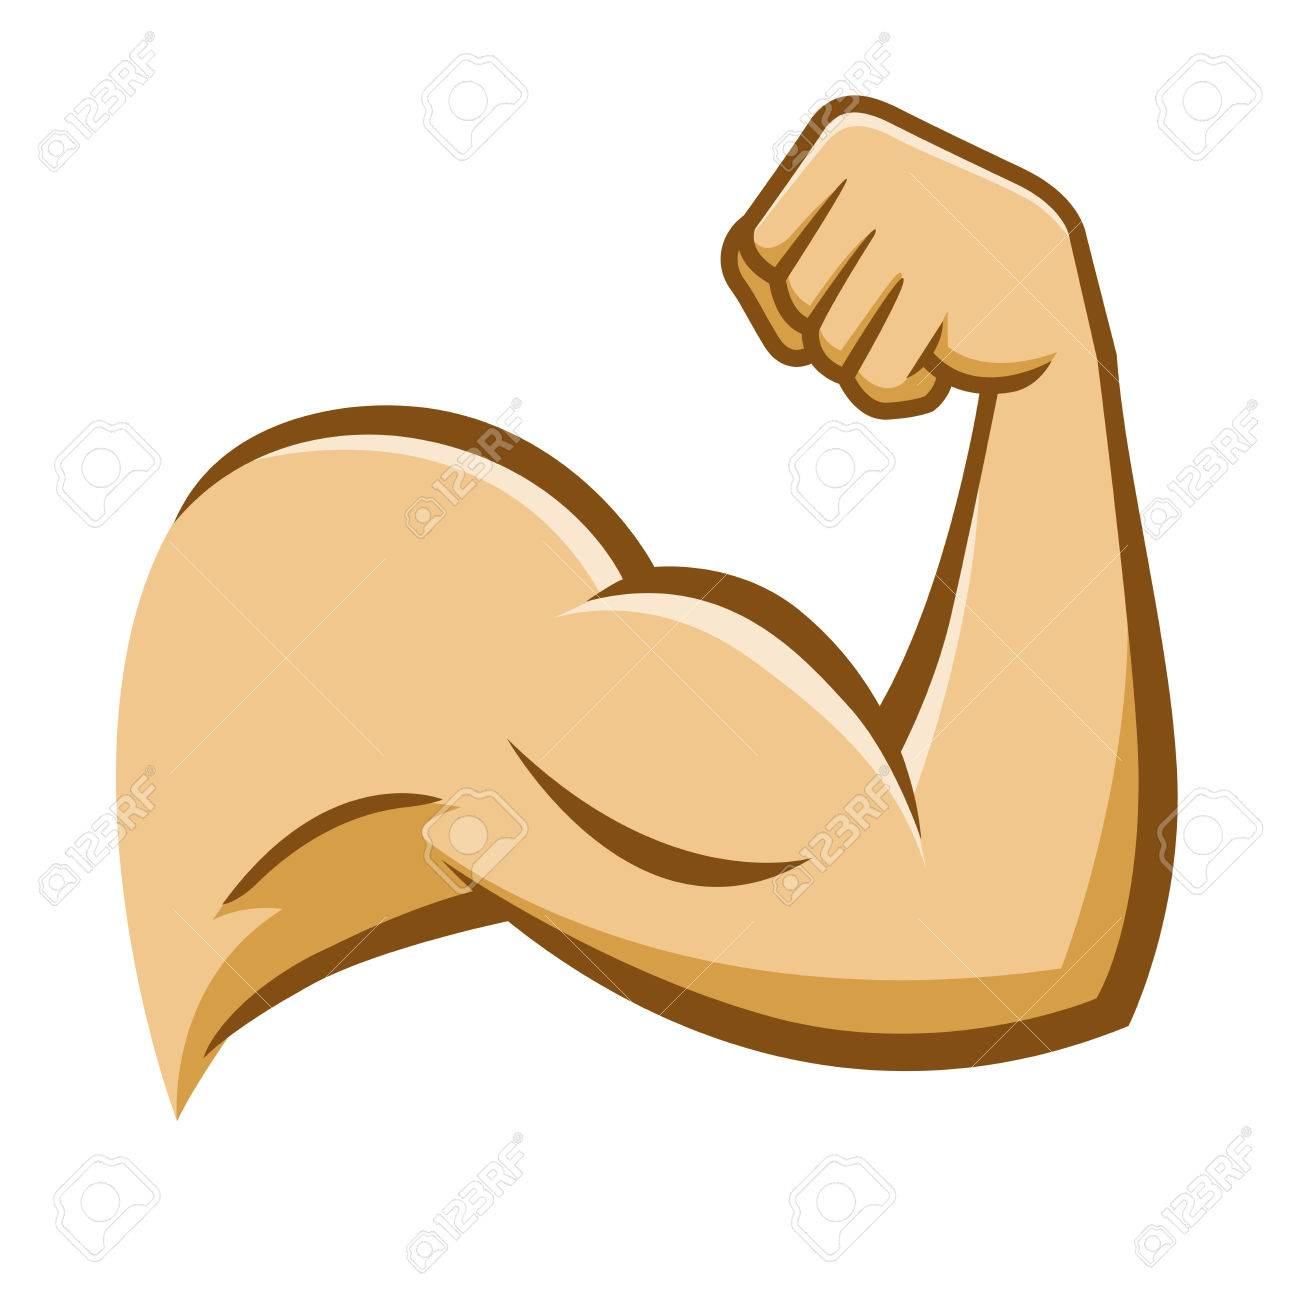 Vector Stock Of A Strong Muscular Arm On A White Background Royalty ...